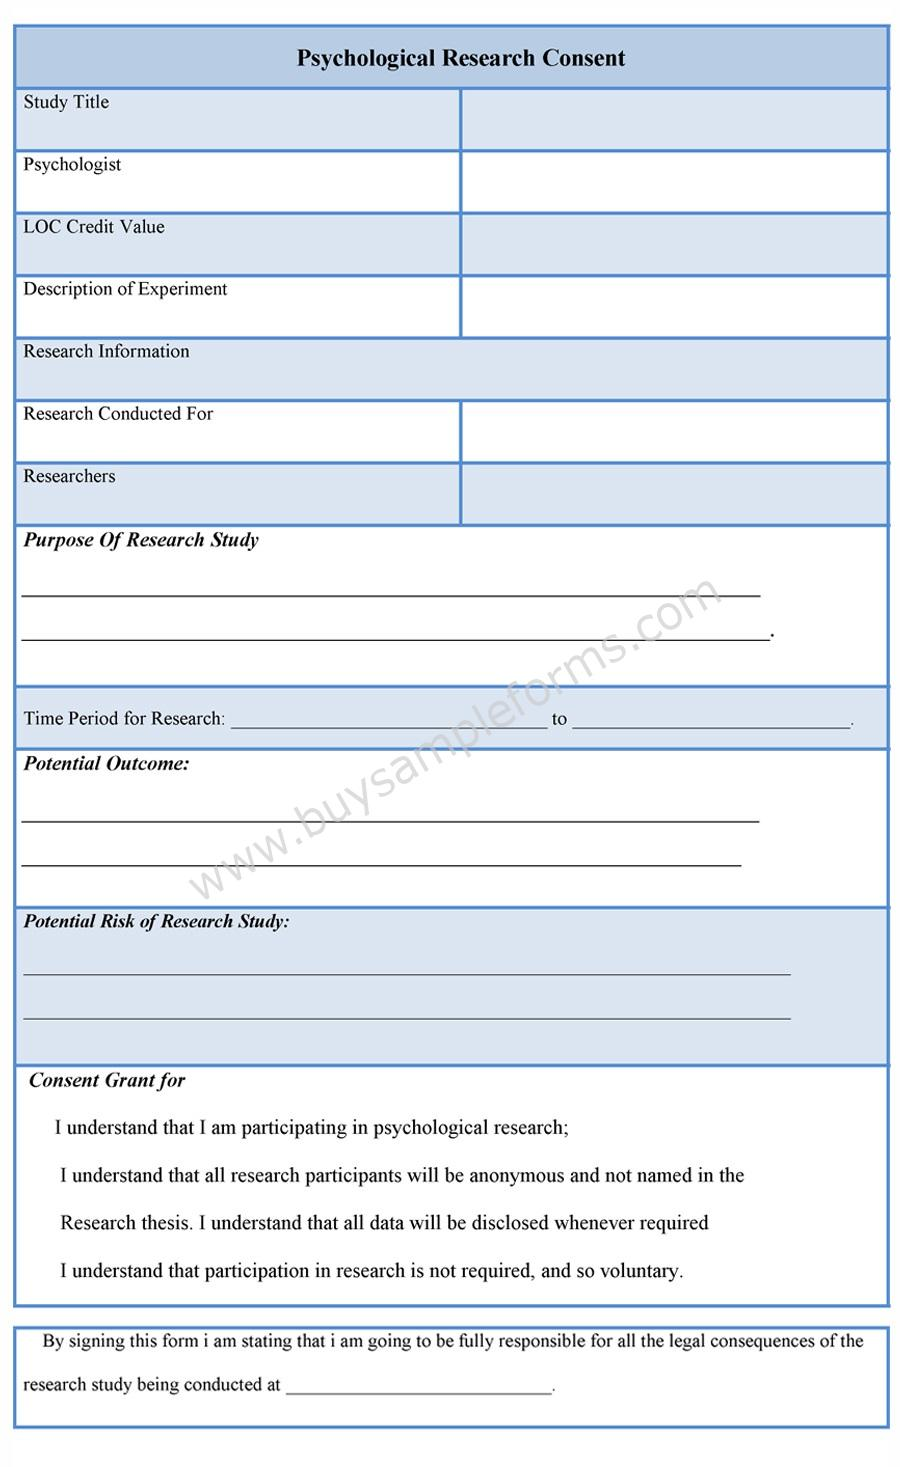 Psychological Research Consent Form – Research Consent Form Template